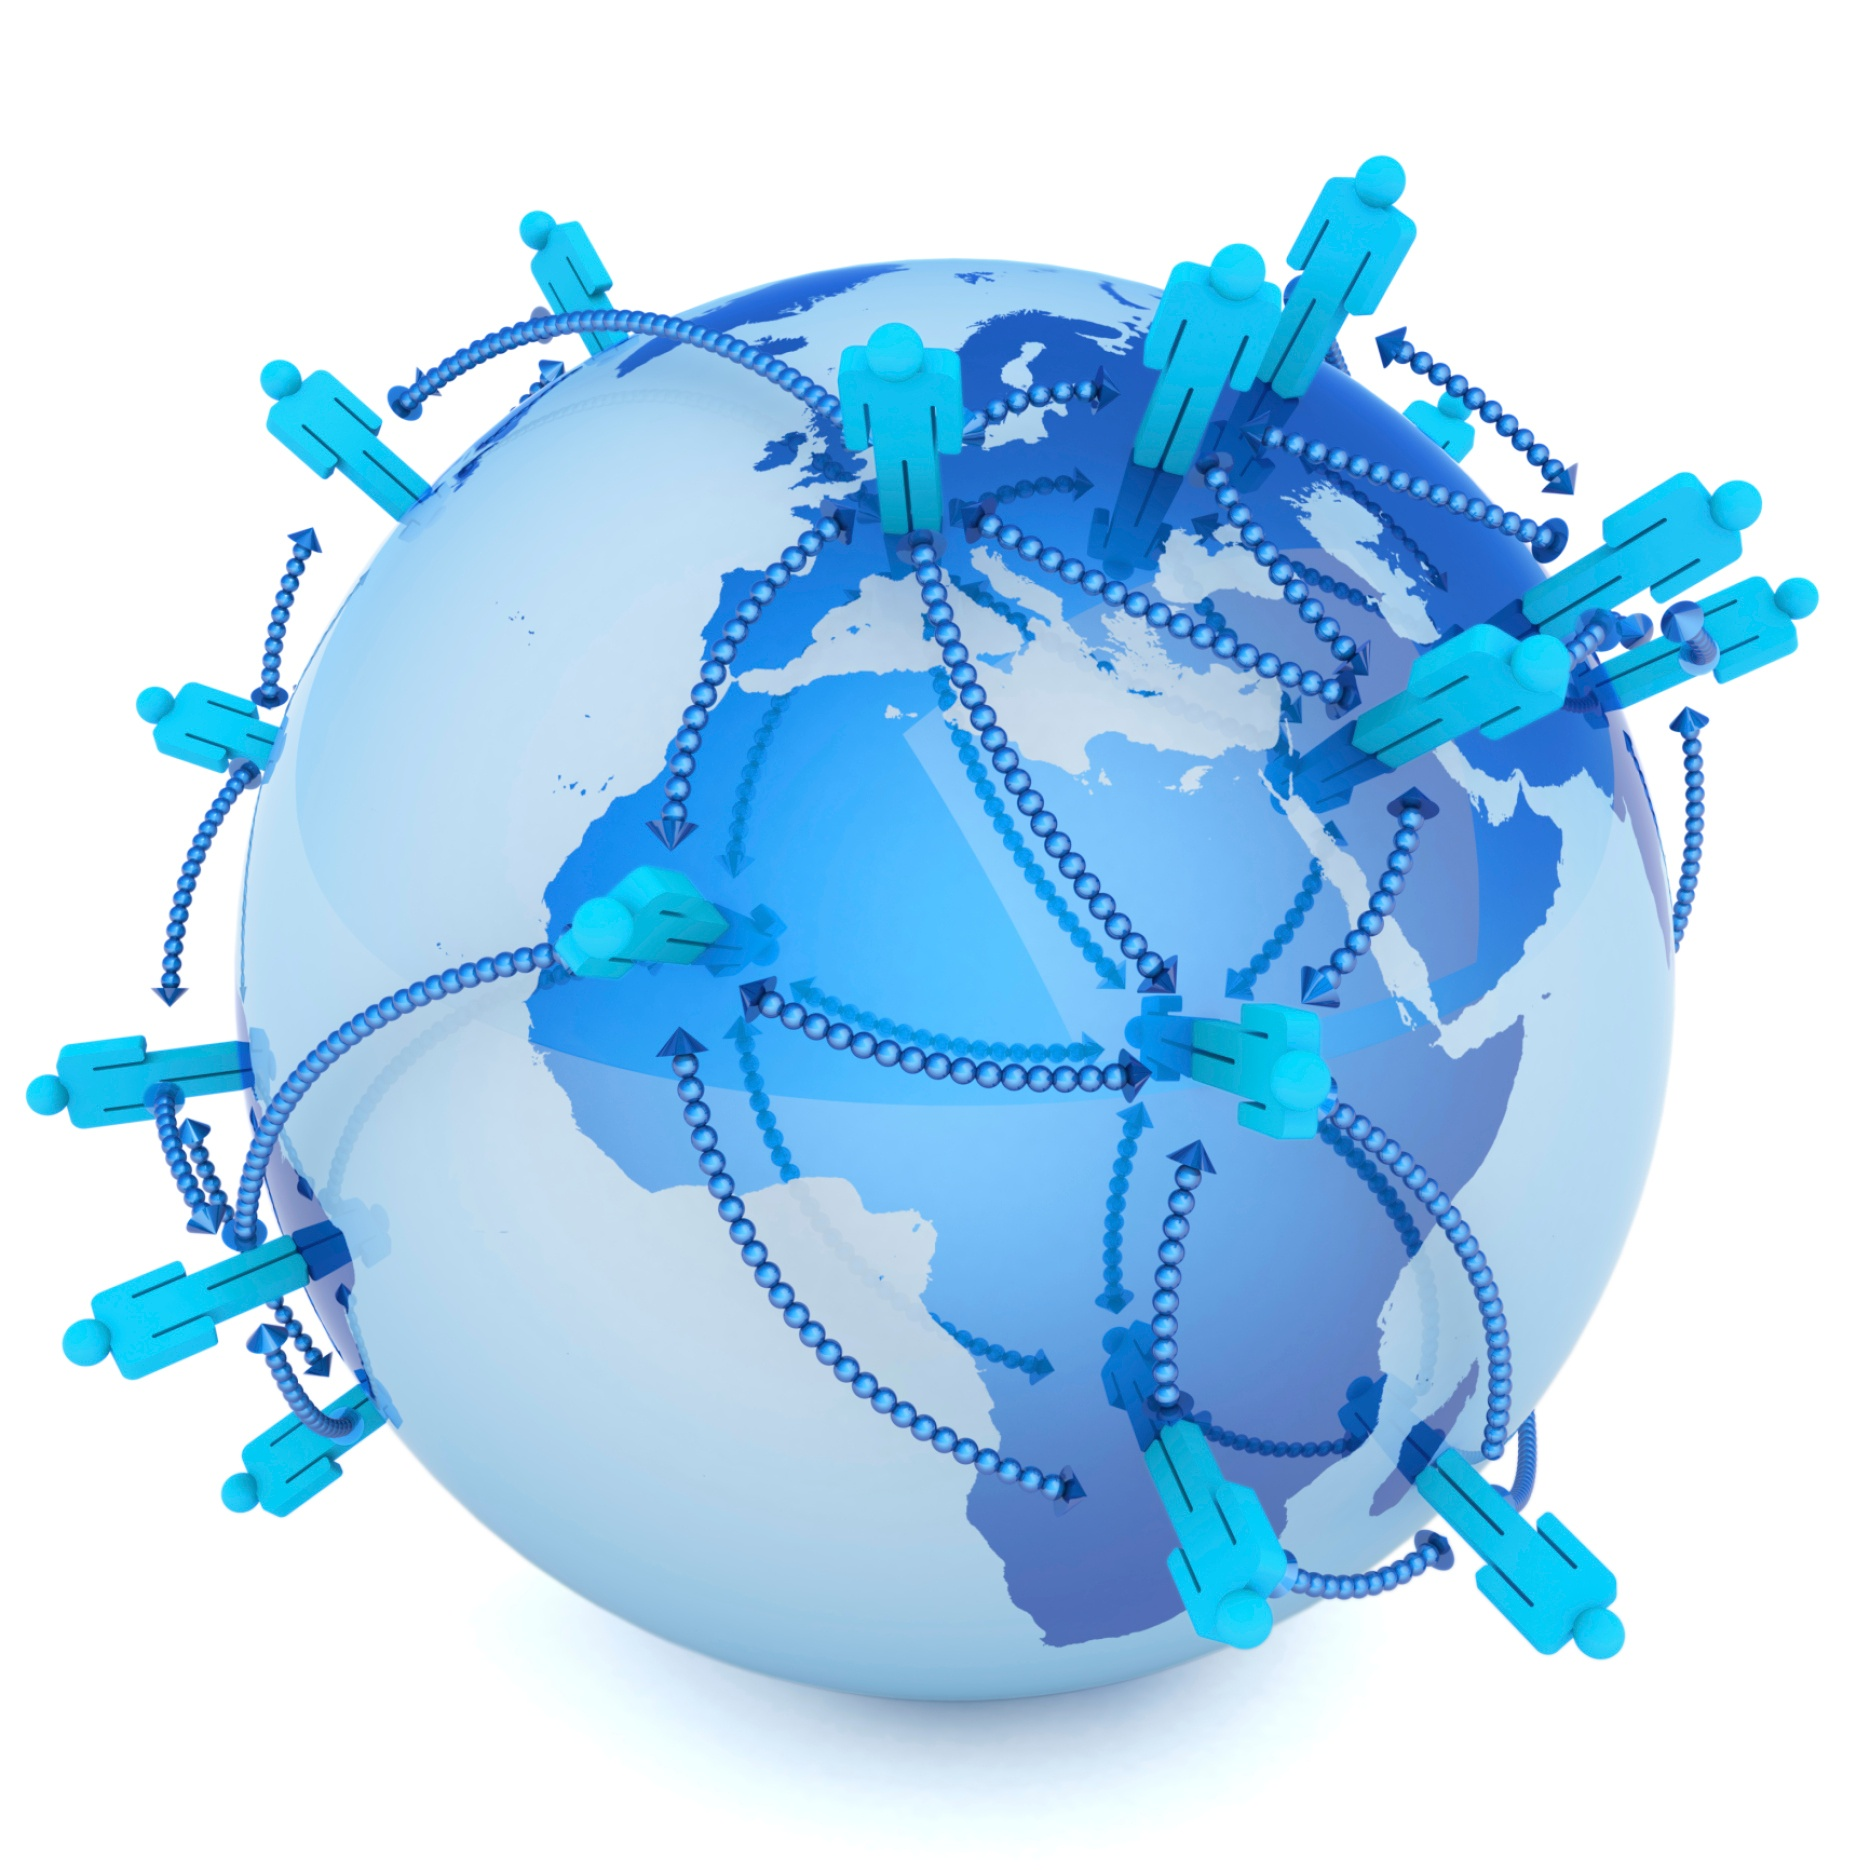 world_connected-1.jpg